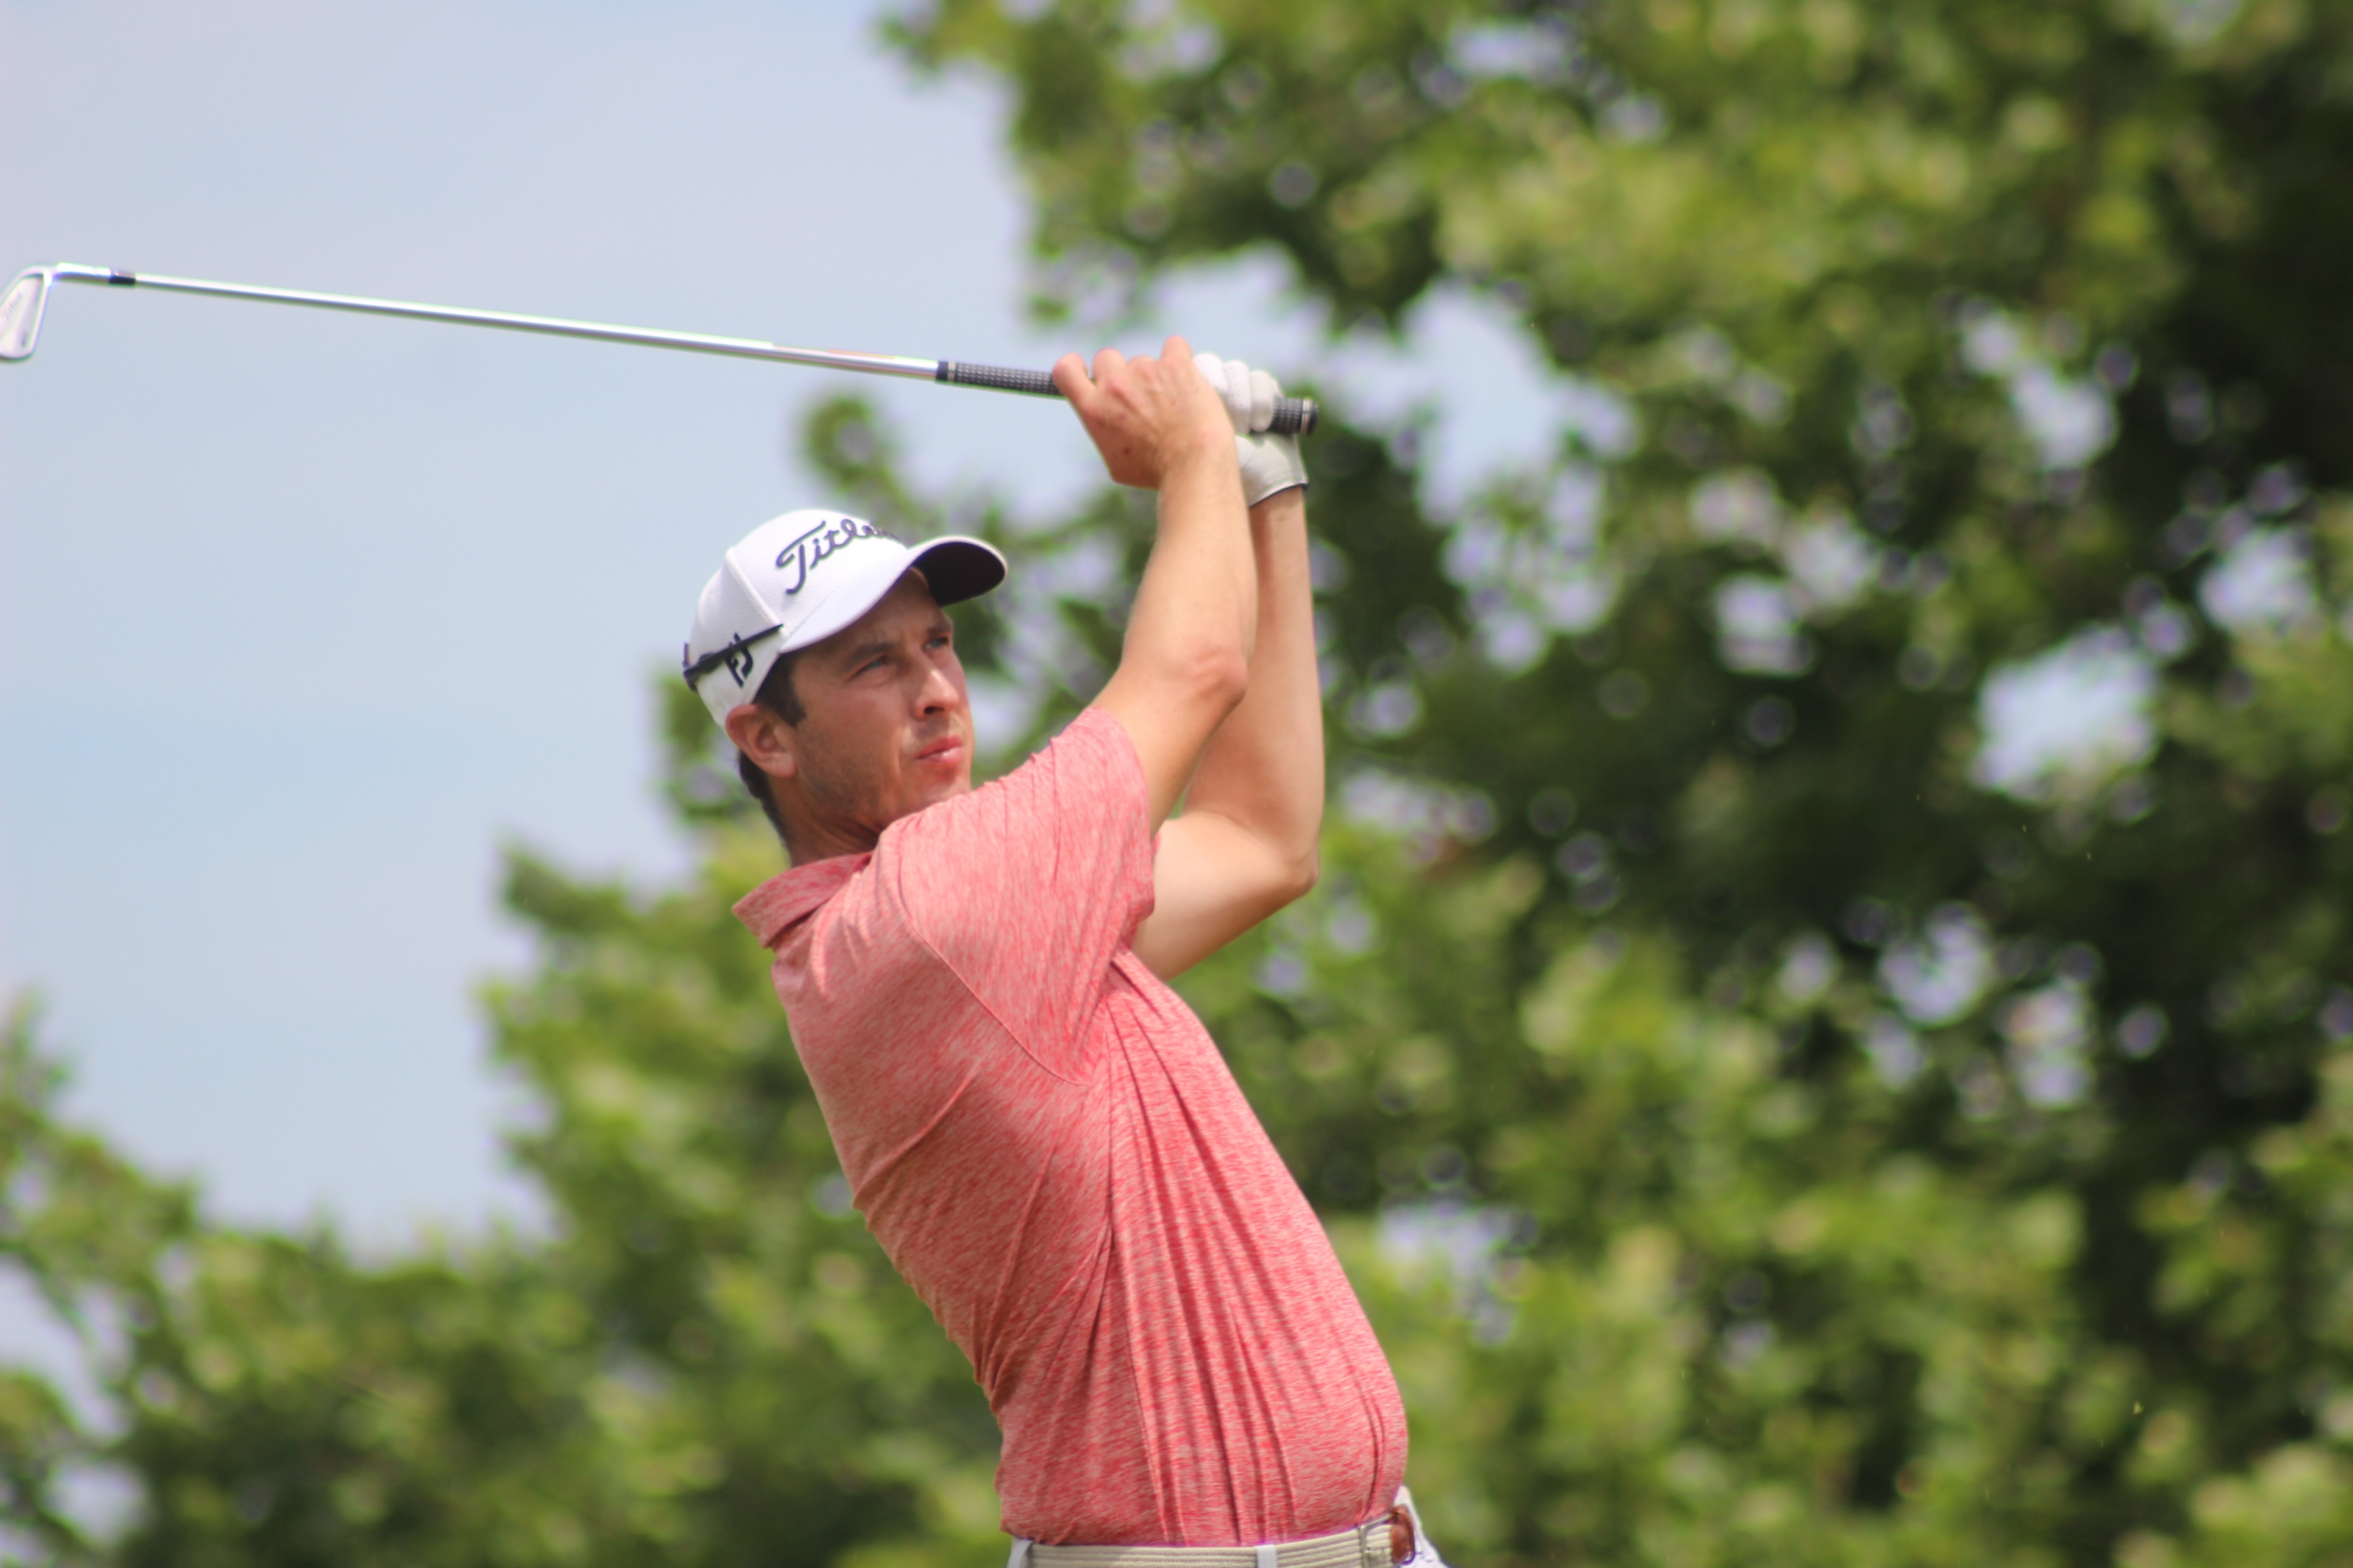 Eric Steger is our 105th Indiana Open Champion with a Three Shot Victory